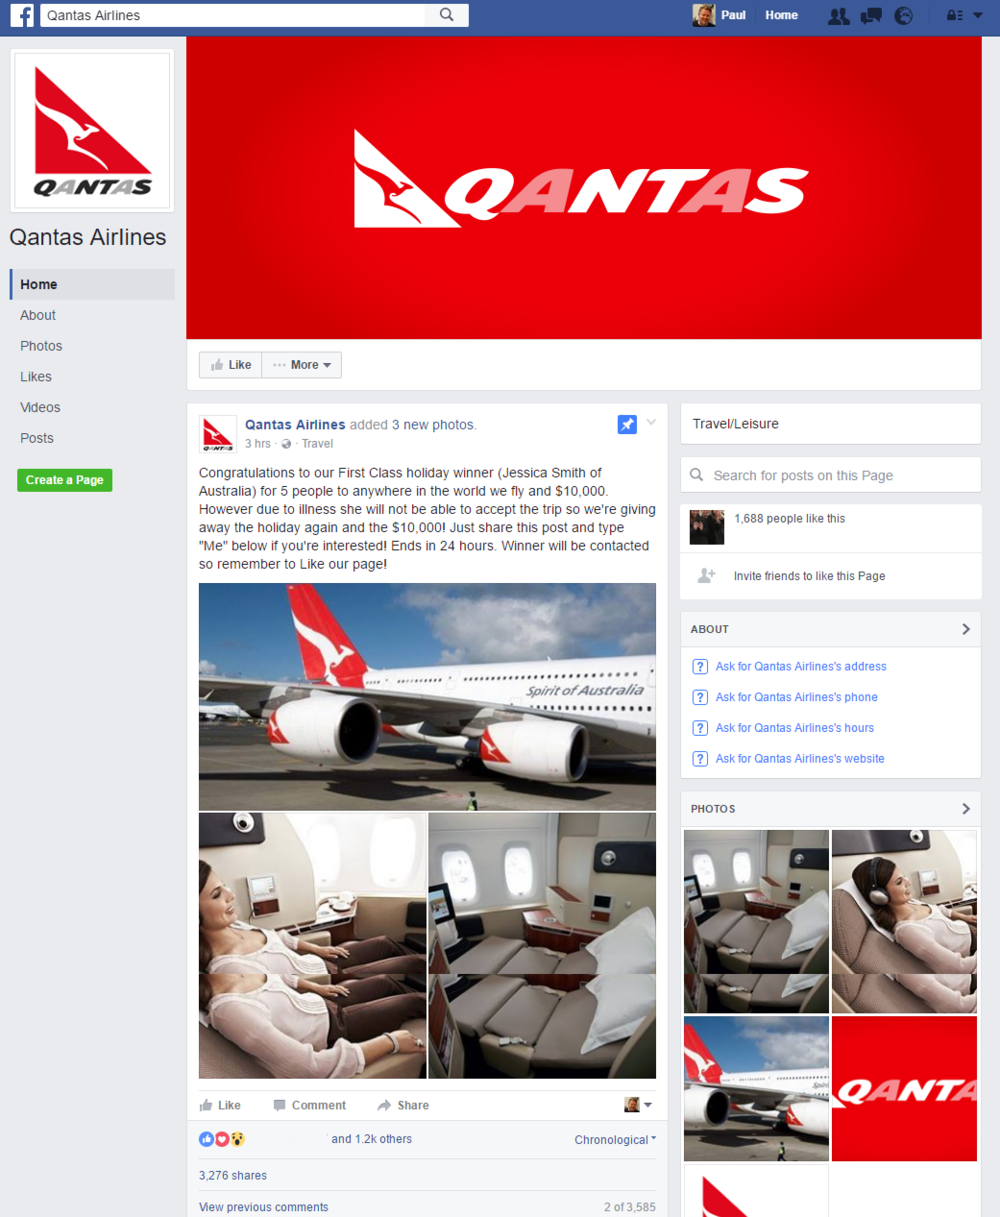 The fake Qantas profile is missing the blue verified tick beside its profile name (top left corner) and has only 1,688 fans (the real Qantas page has 888,000).